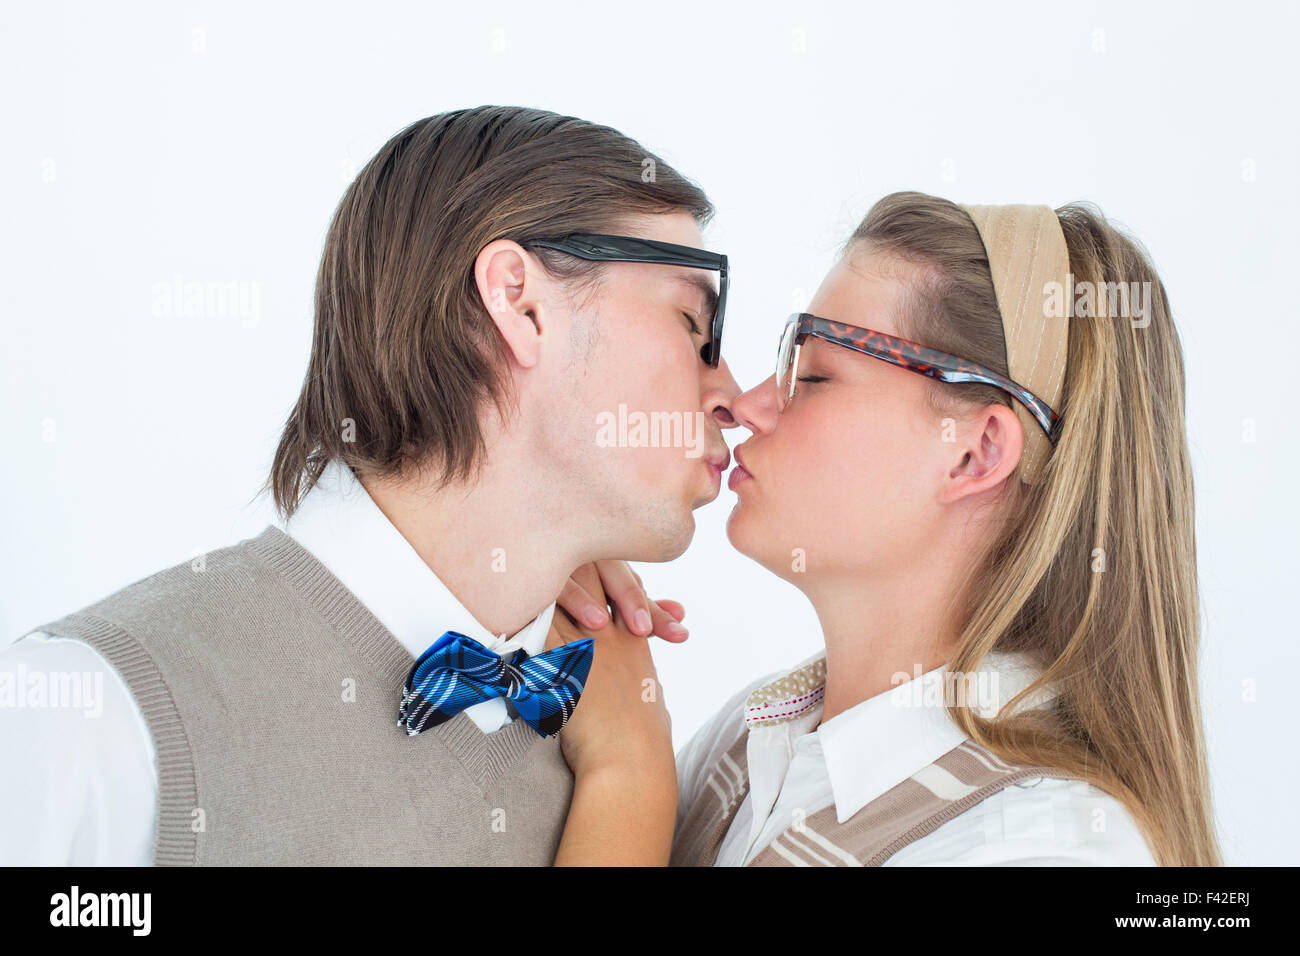 Geeky hipster couple kissing - Stock Image